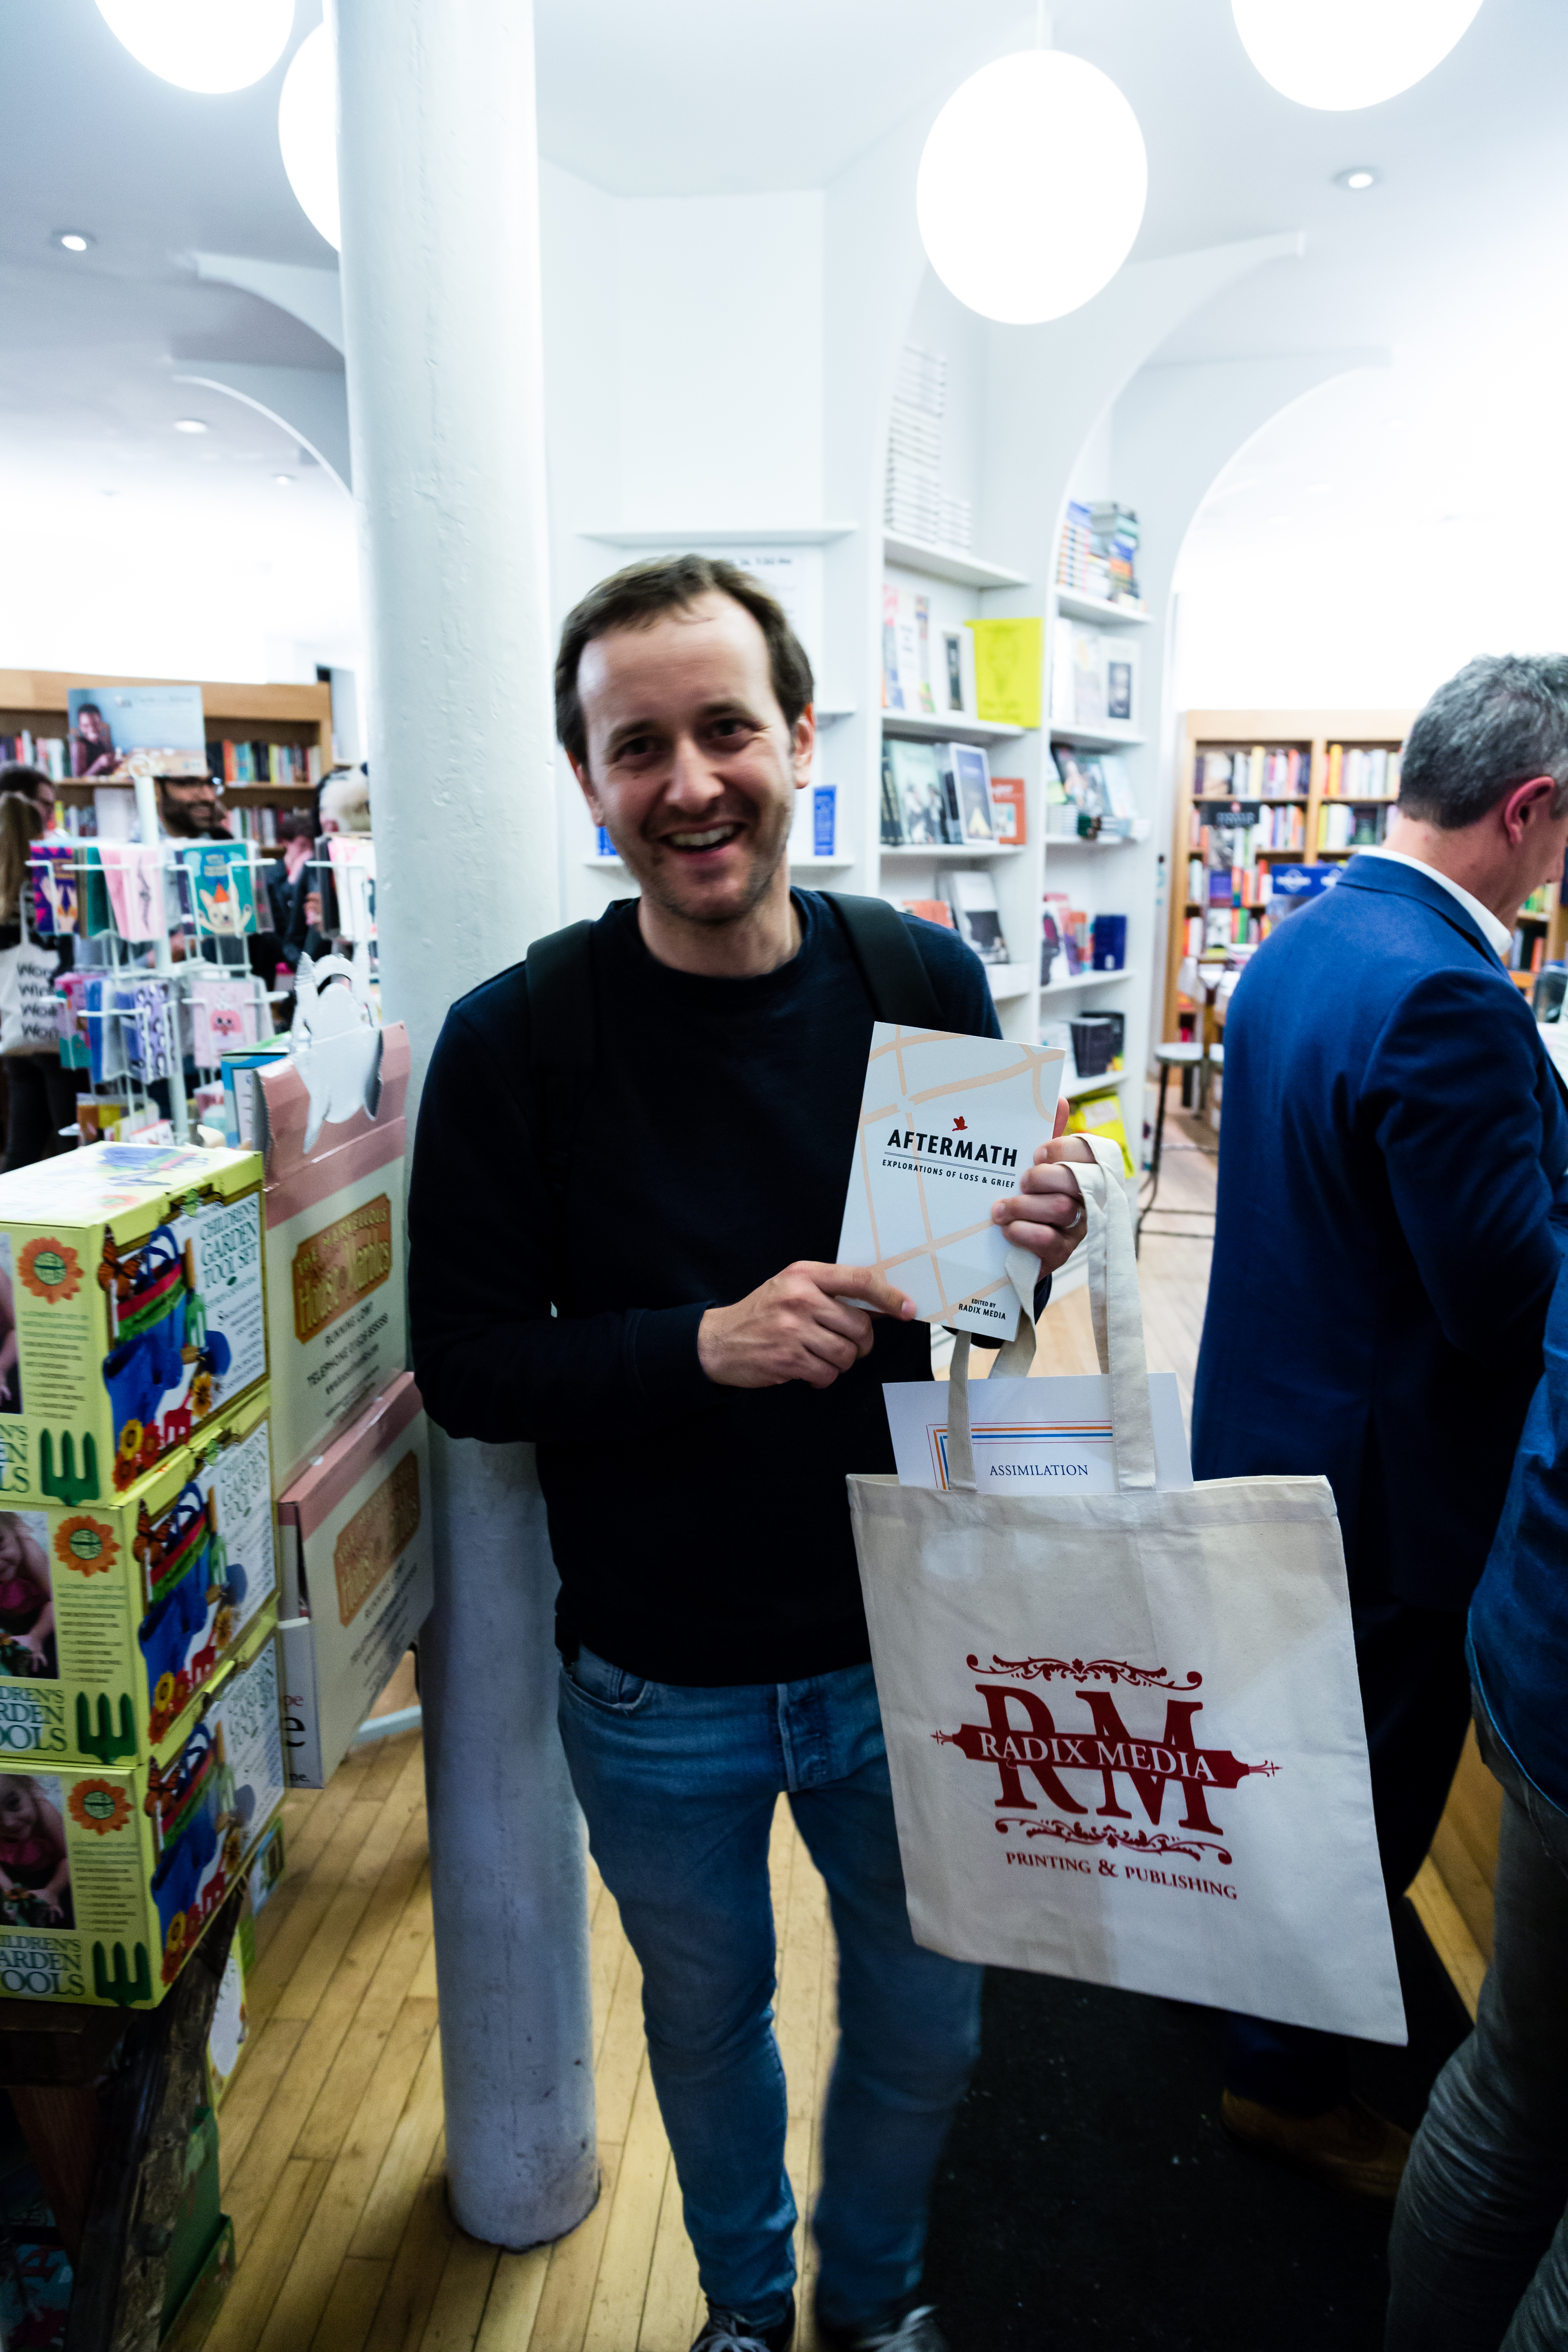 AFTERMATH Launch - Augustus holding a copy.